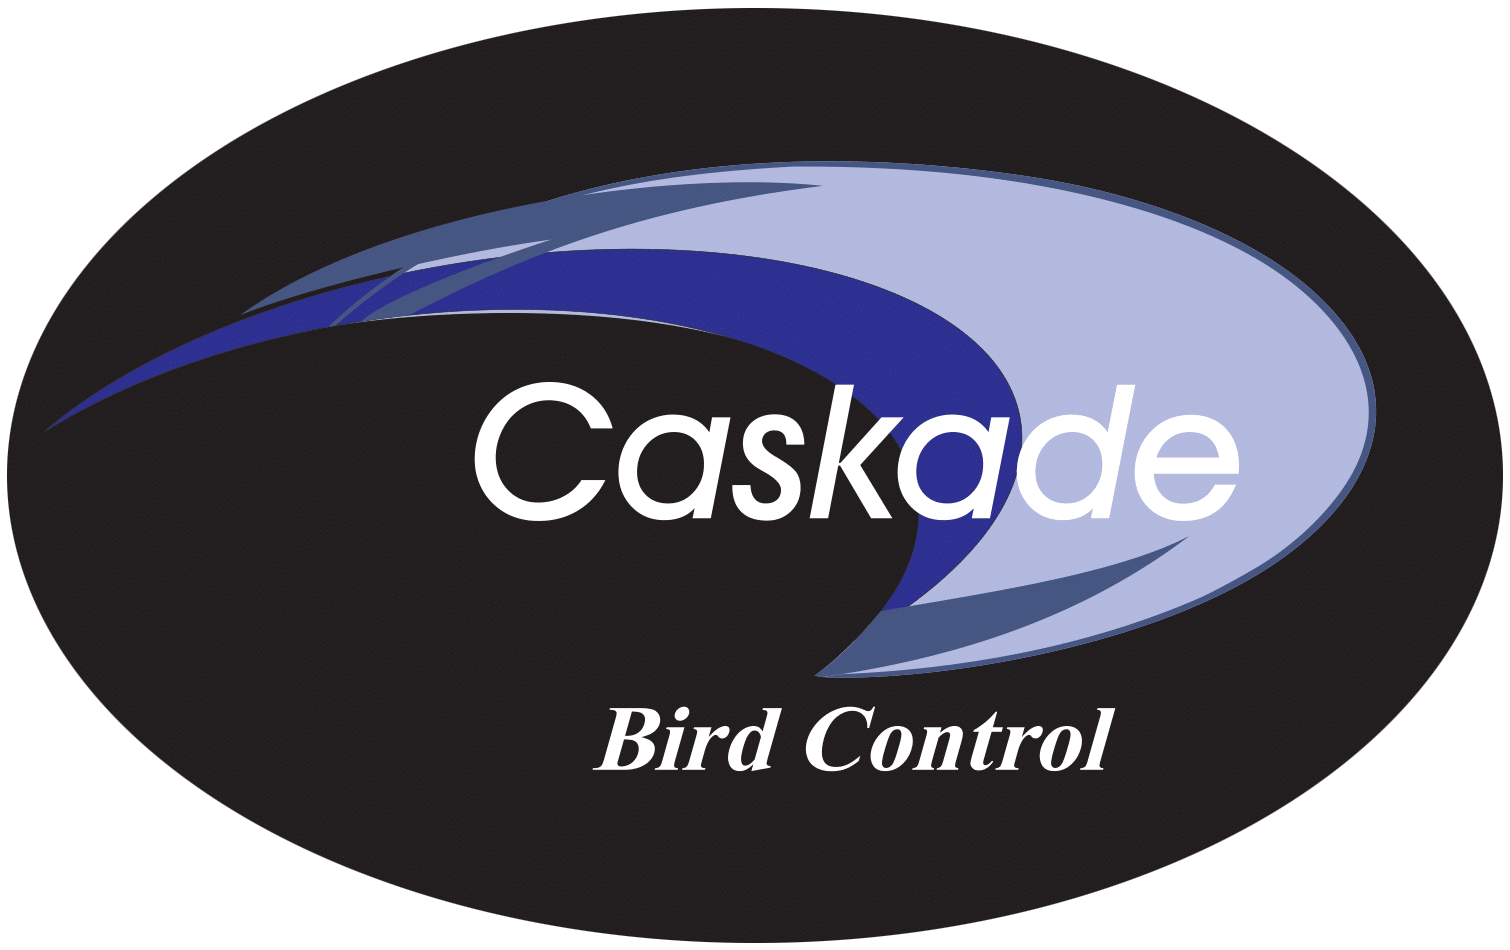 Caskade Bird Control Inc